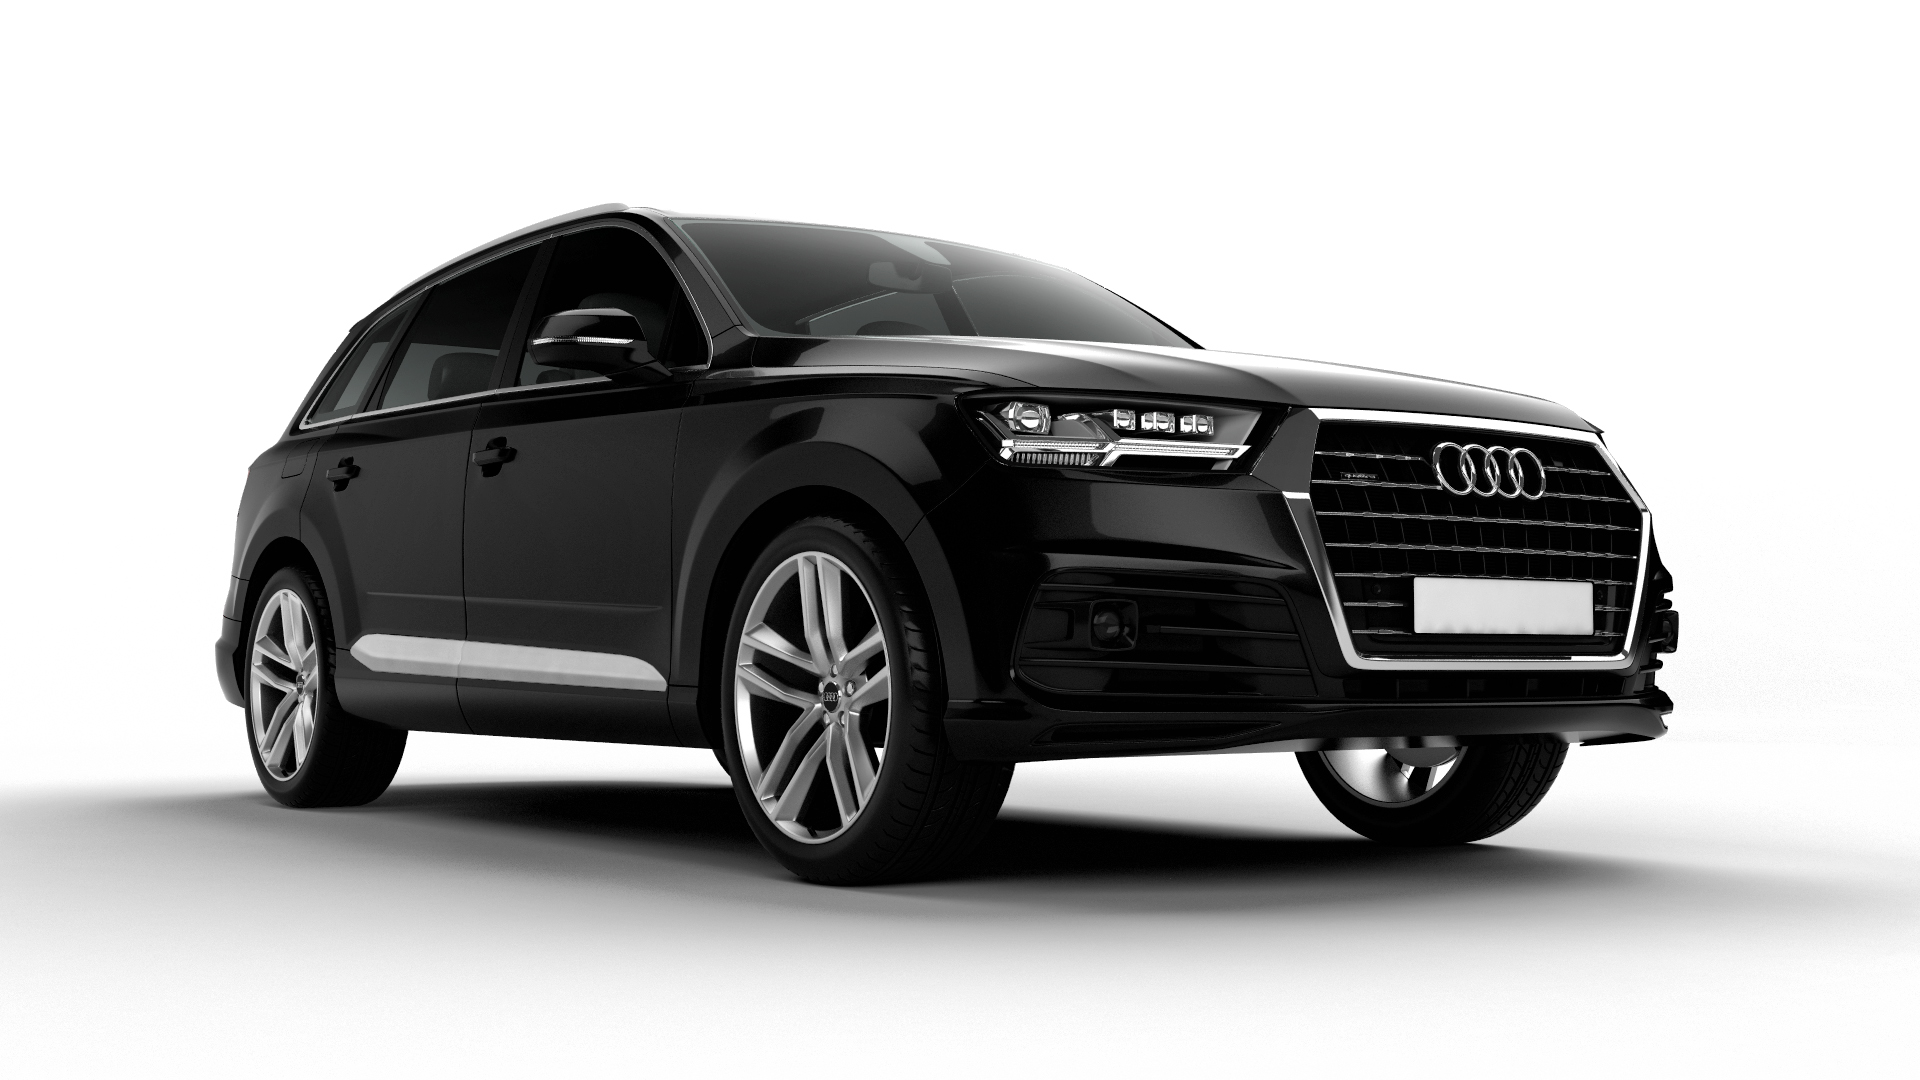 Audi Q3,Q7 Modelling and Renders